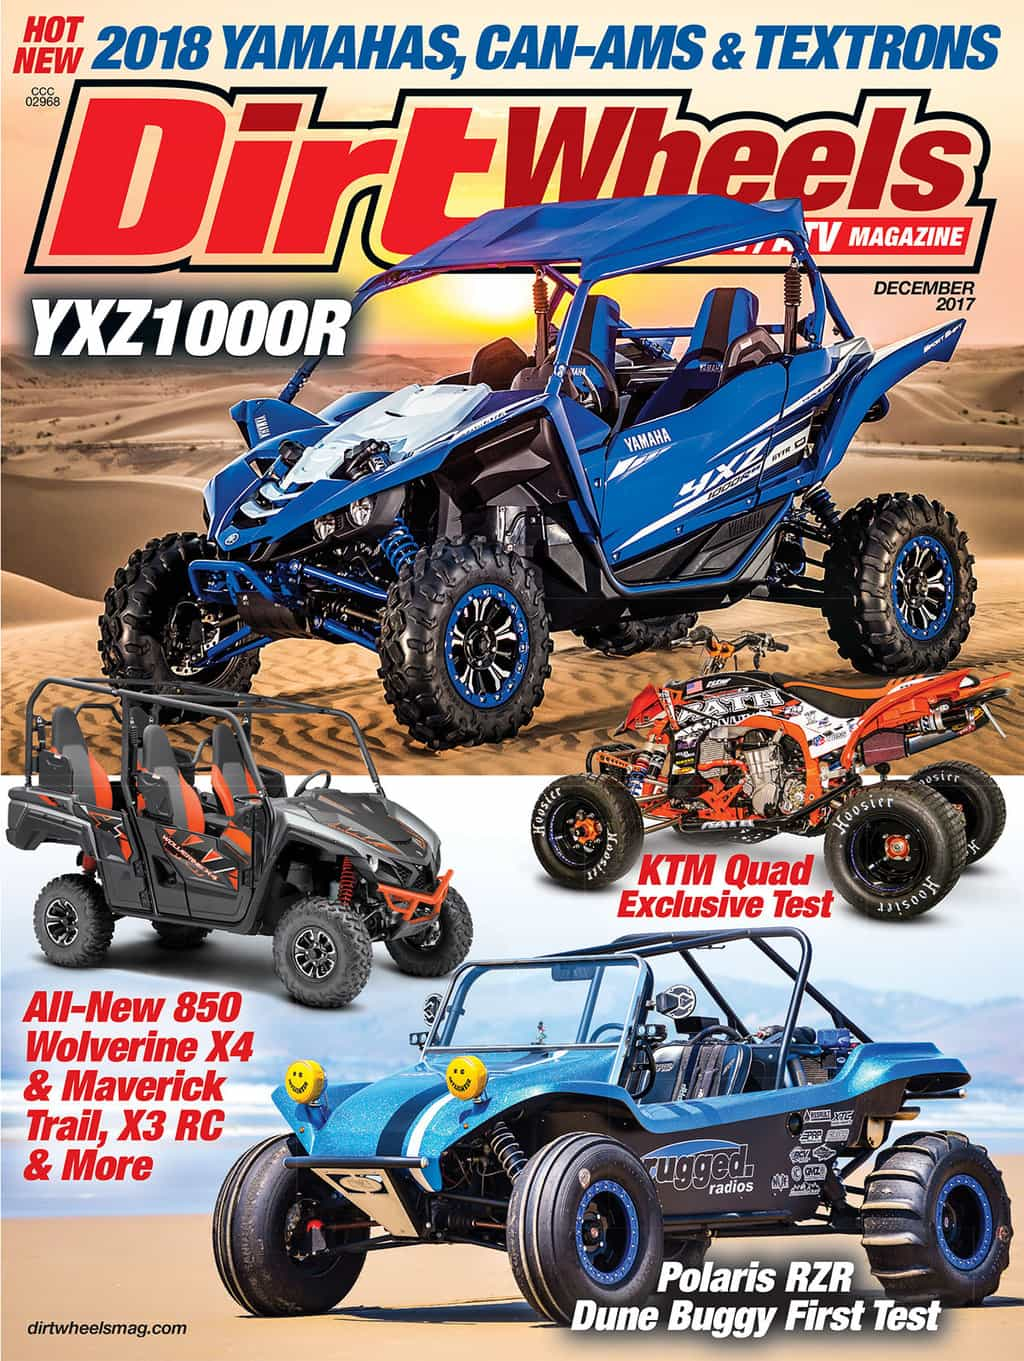 Yxz1000r Shares The Cover With A Custom Built Yamaha Ktm Quad And S All New Wolverine X4 Nostalgia Kicks In Rugged Radios Beach Buggy Rzr